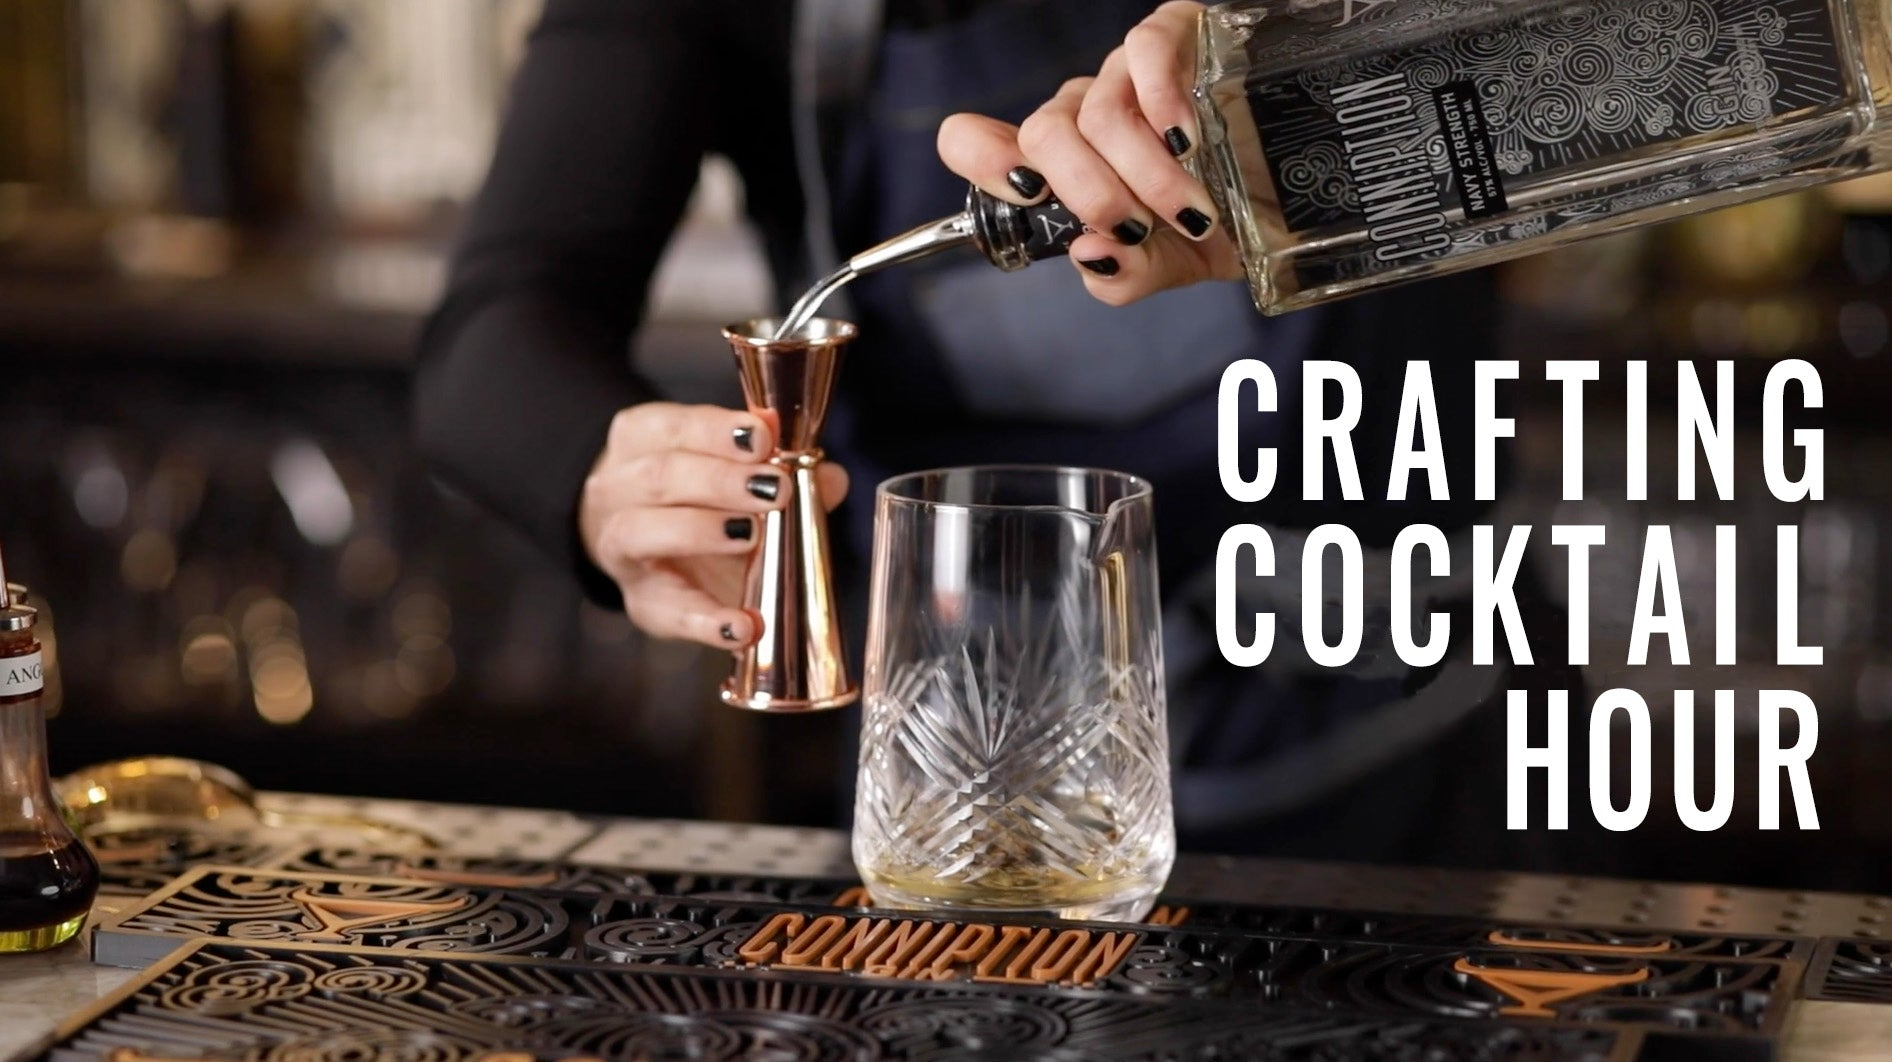 Crafting Cocktail Hour - Cocktail Clas